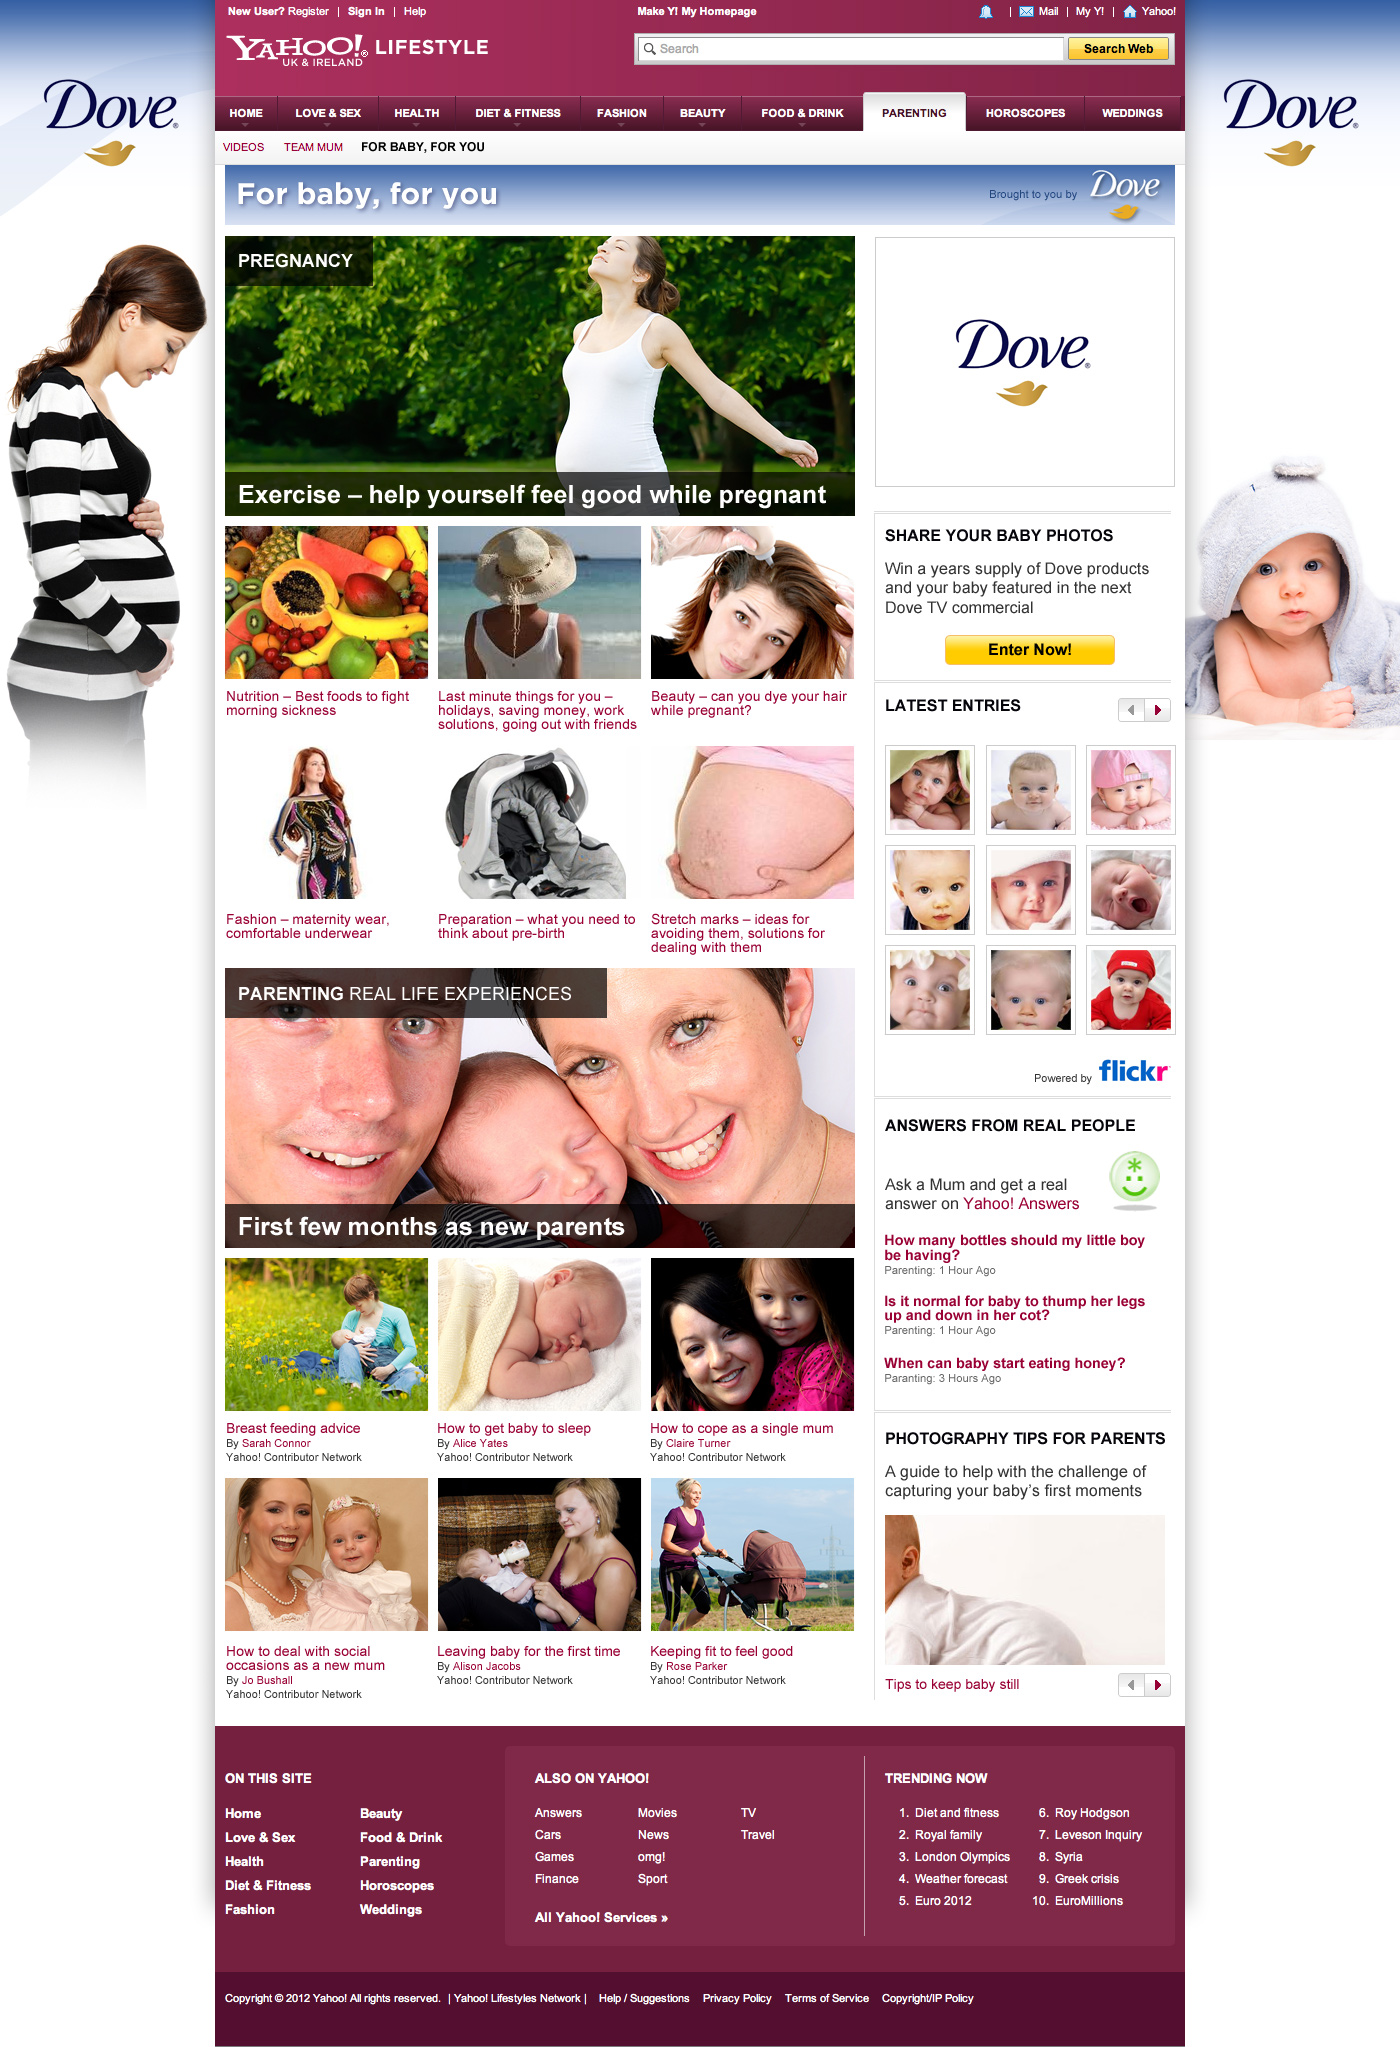 Dove - For baby, for you - Website Design Farnborough